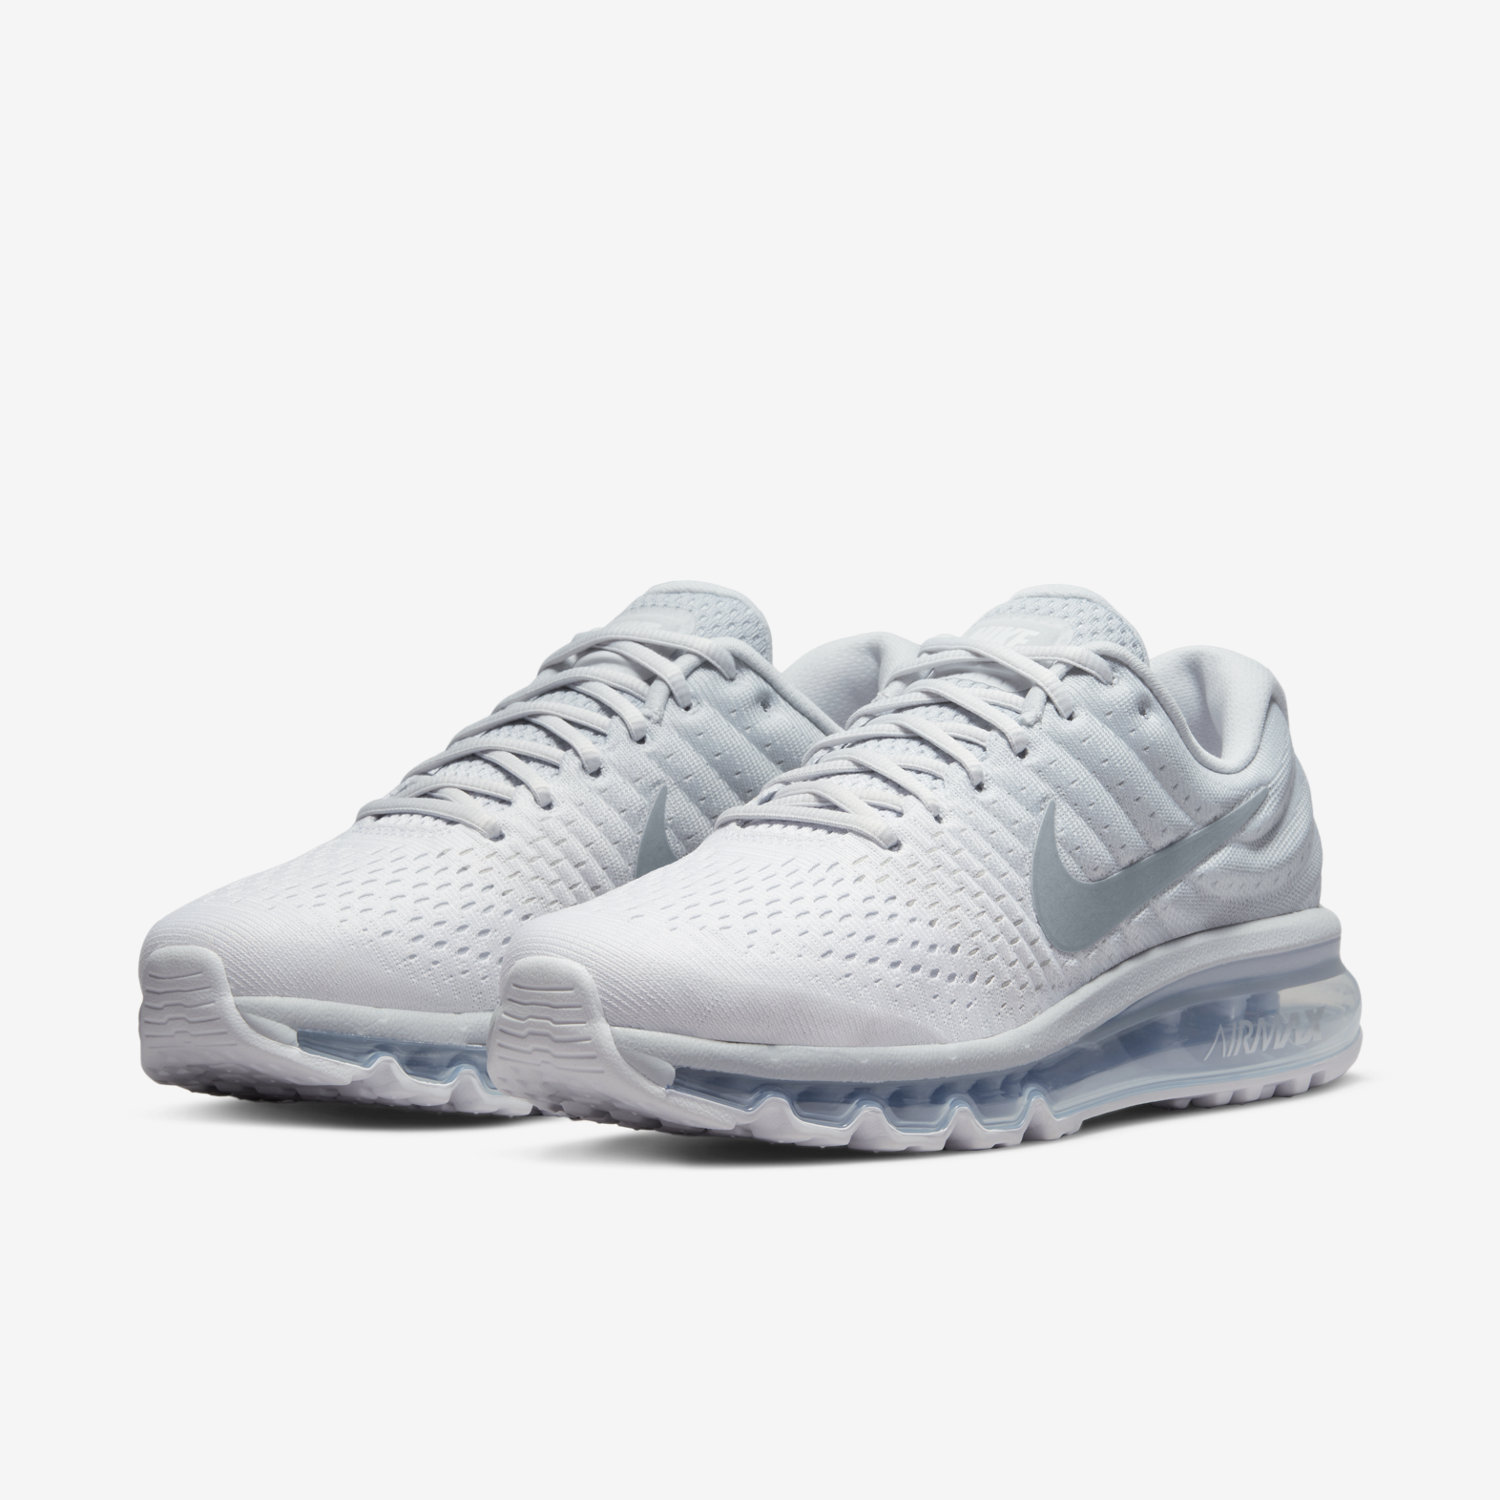 Cheap Nike WMNS Air Max 2015